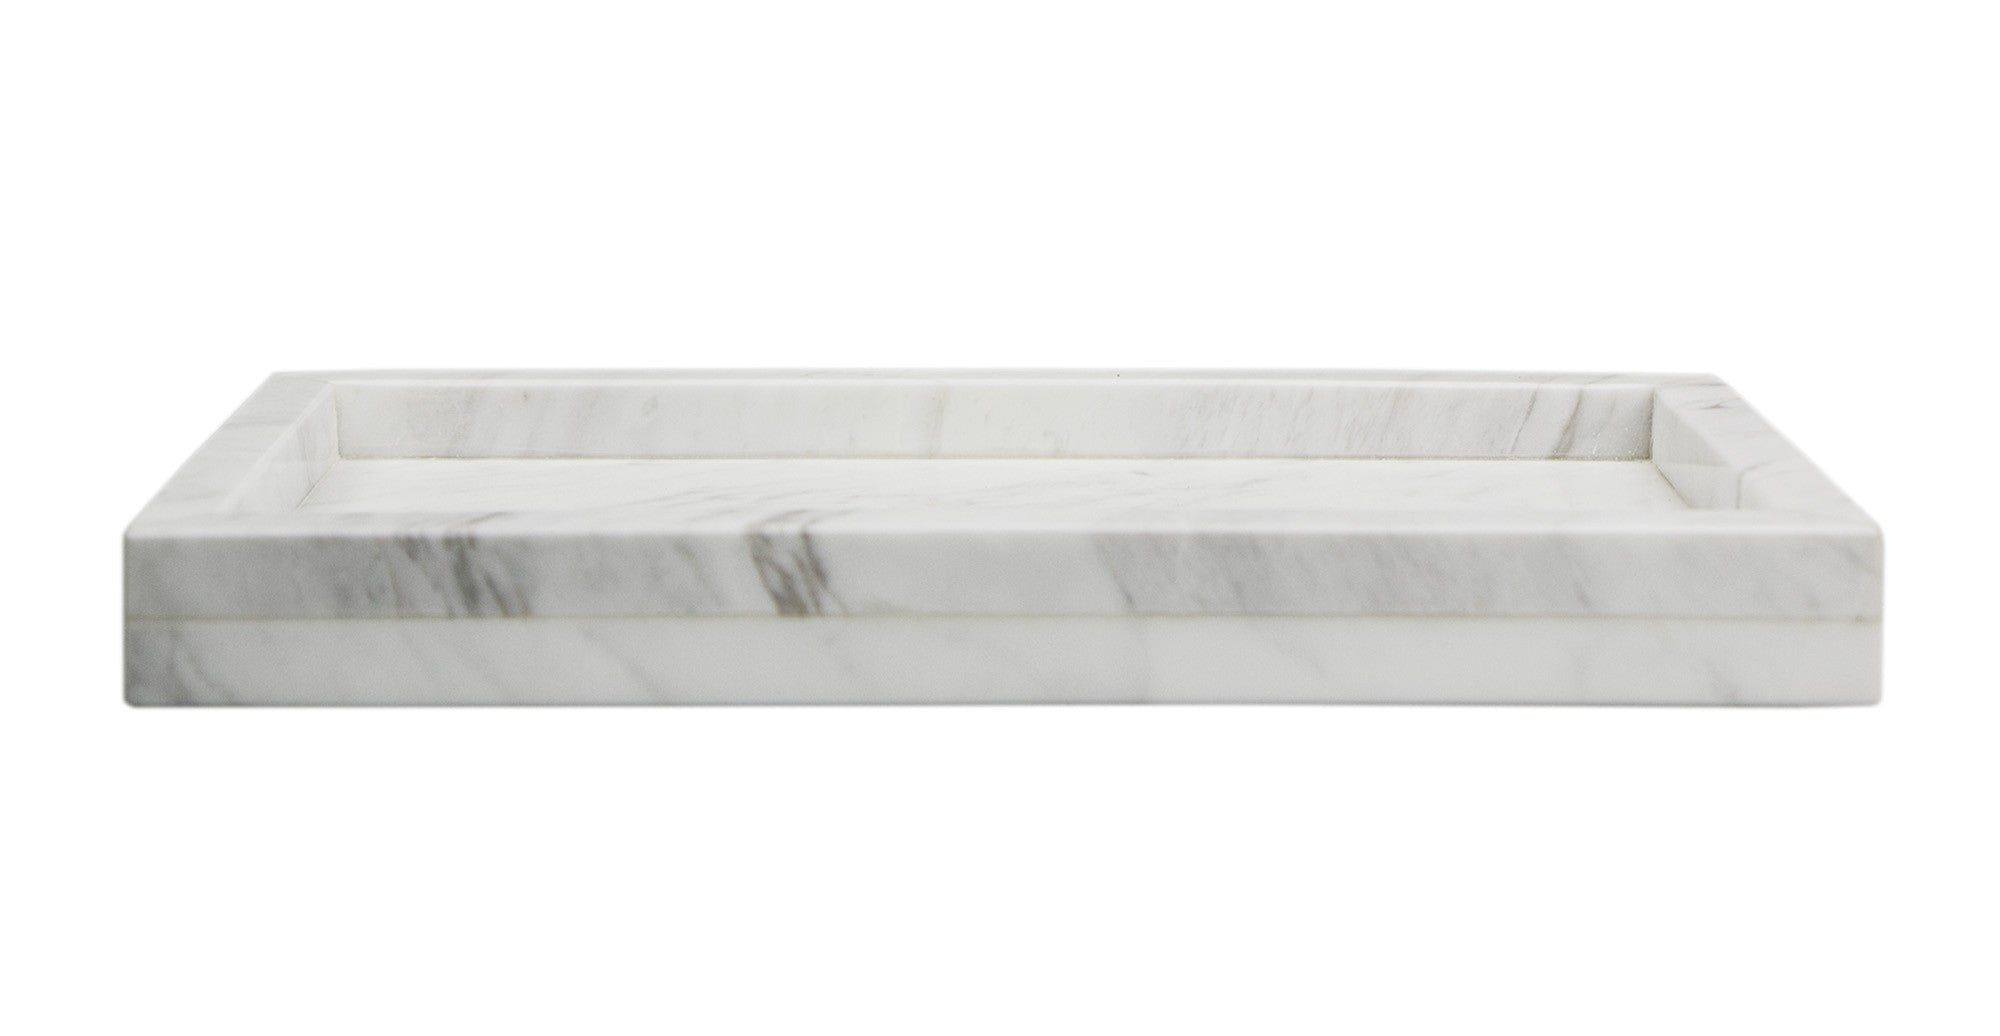 Elgin Marble Tray